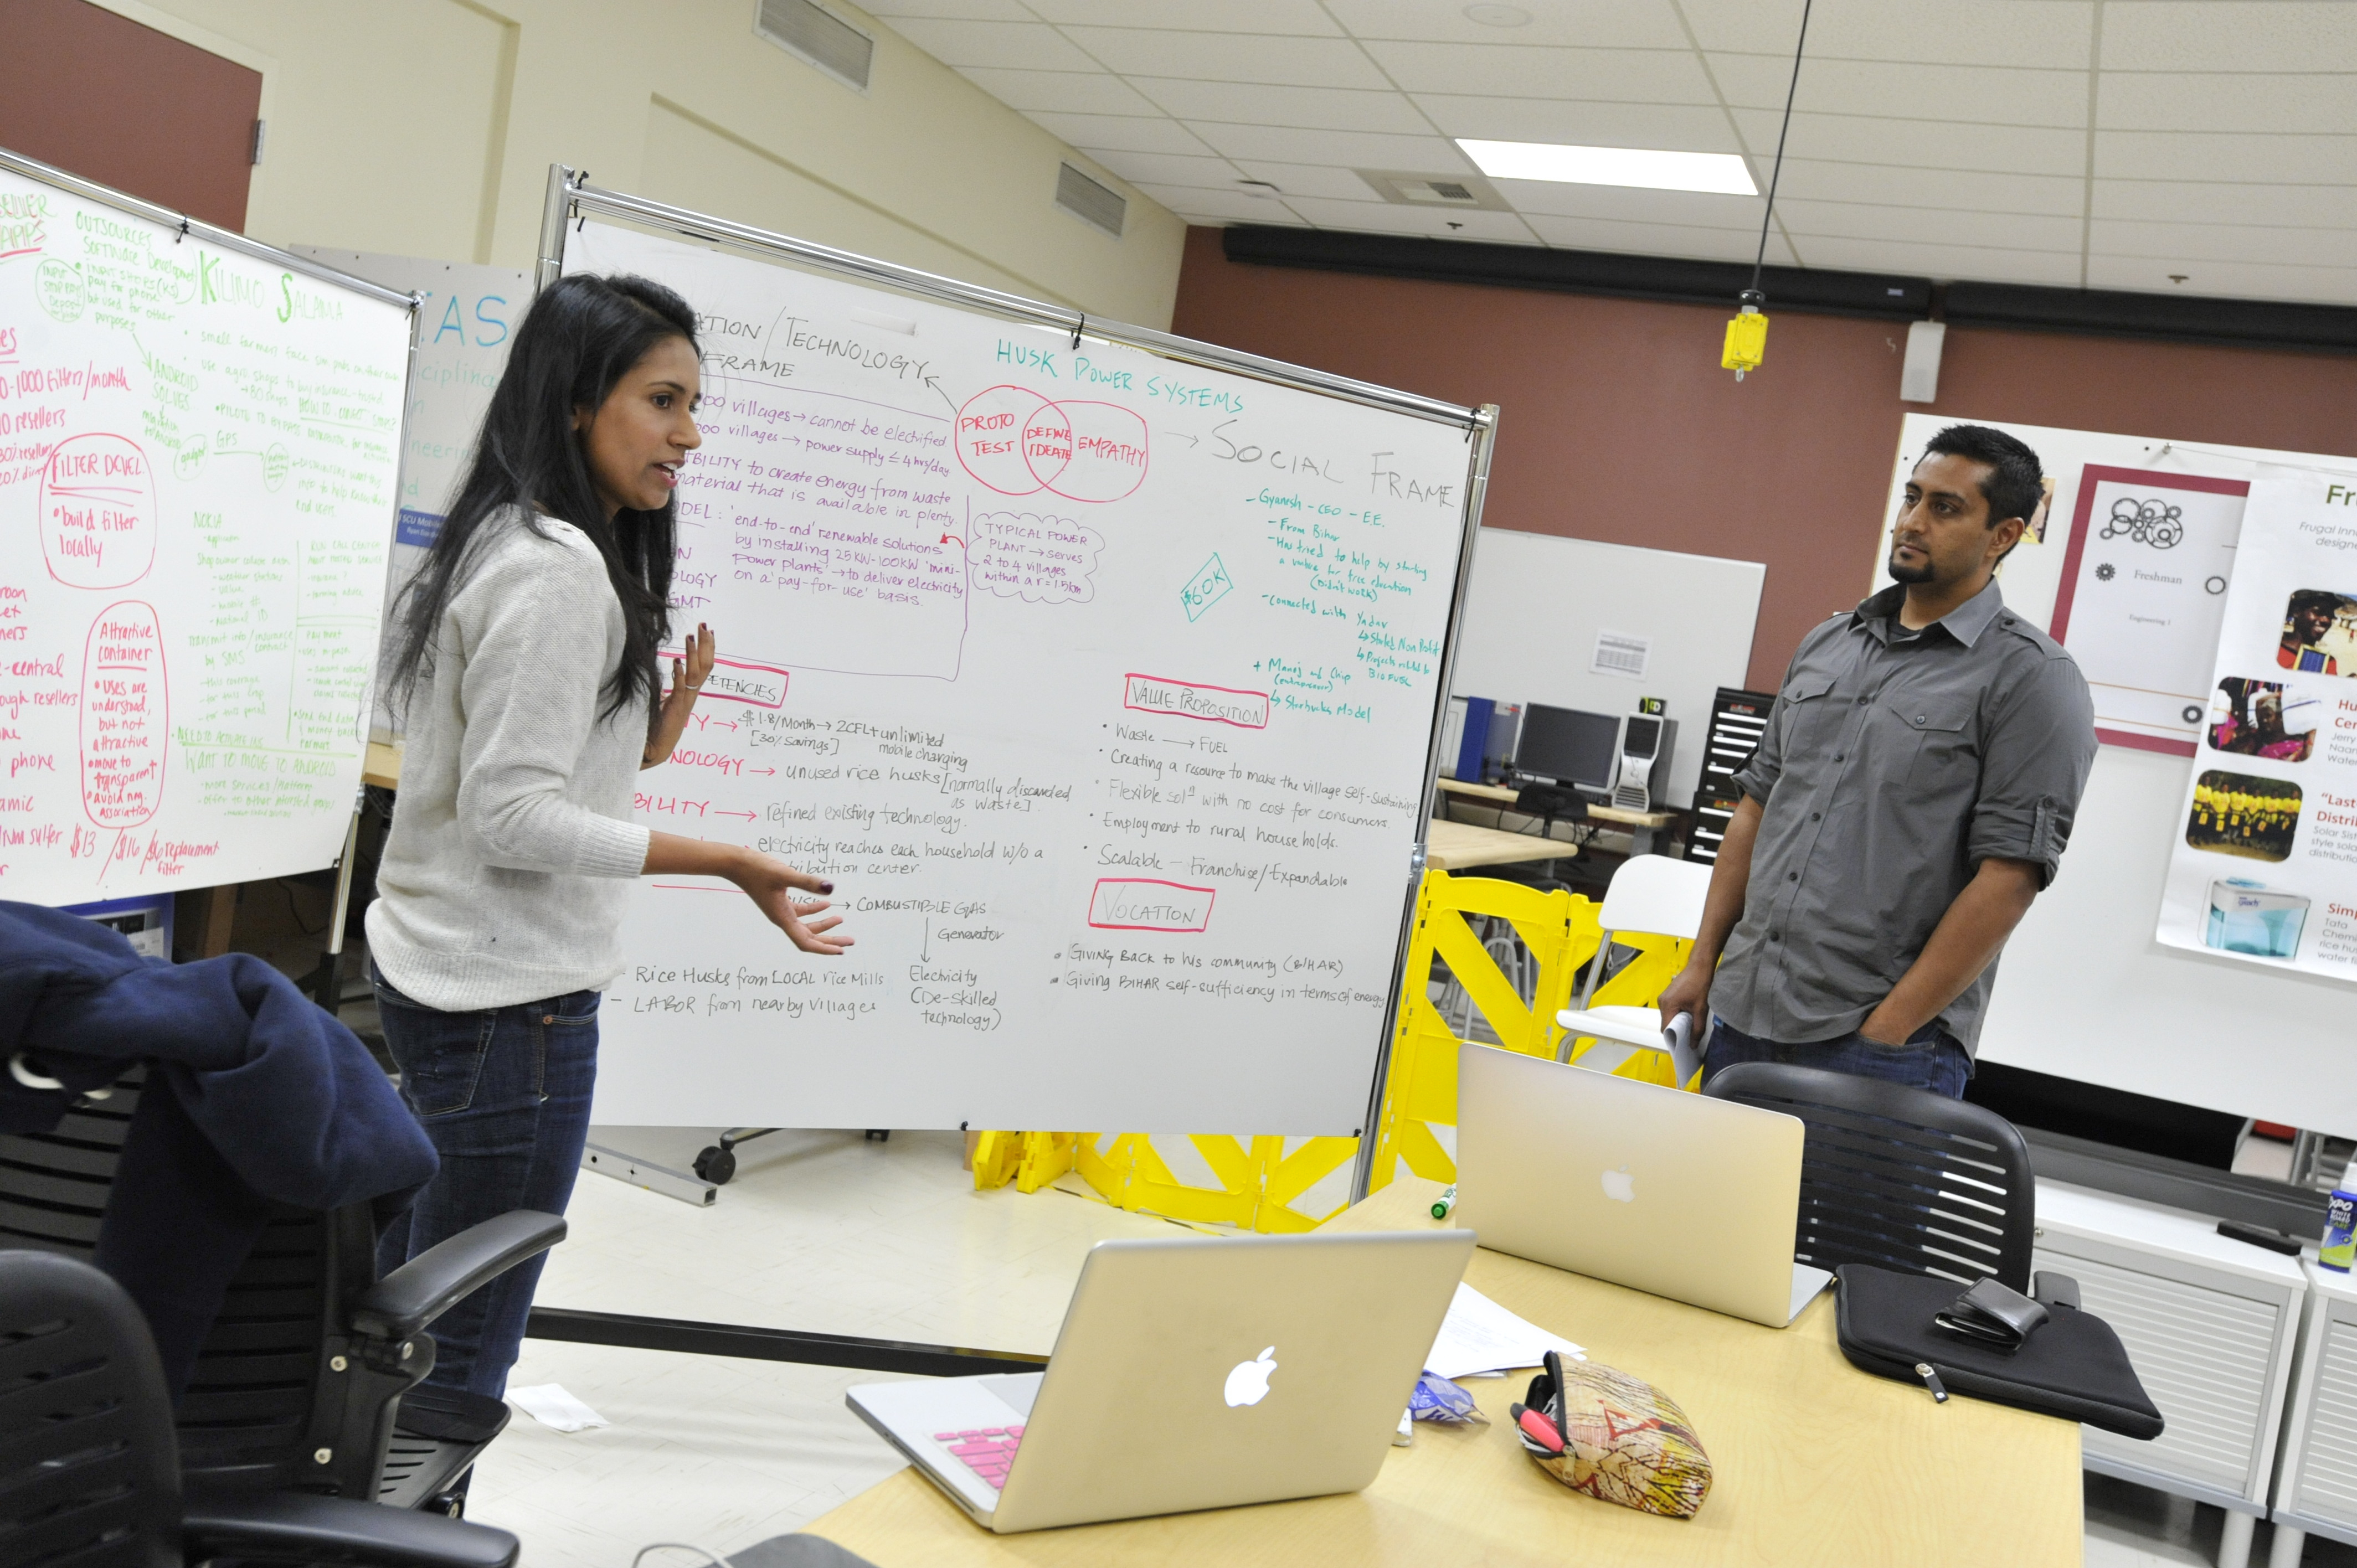 Two students stand in front of a white board with brainstorming work on it, presenting to colleagues.